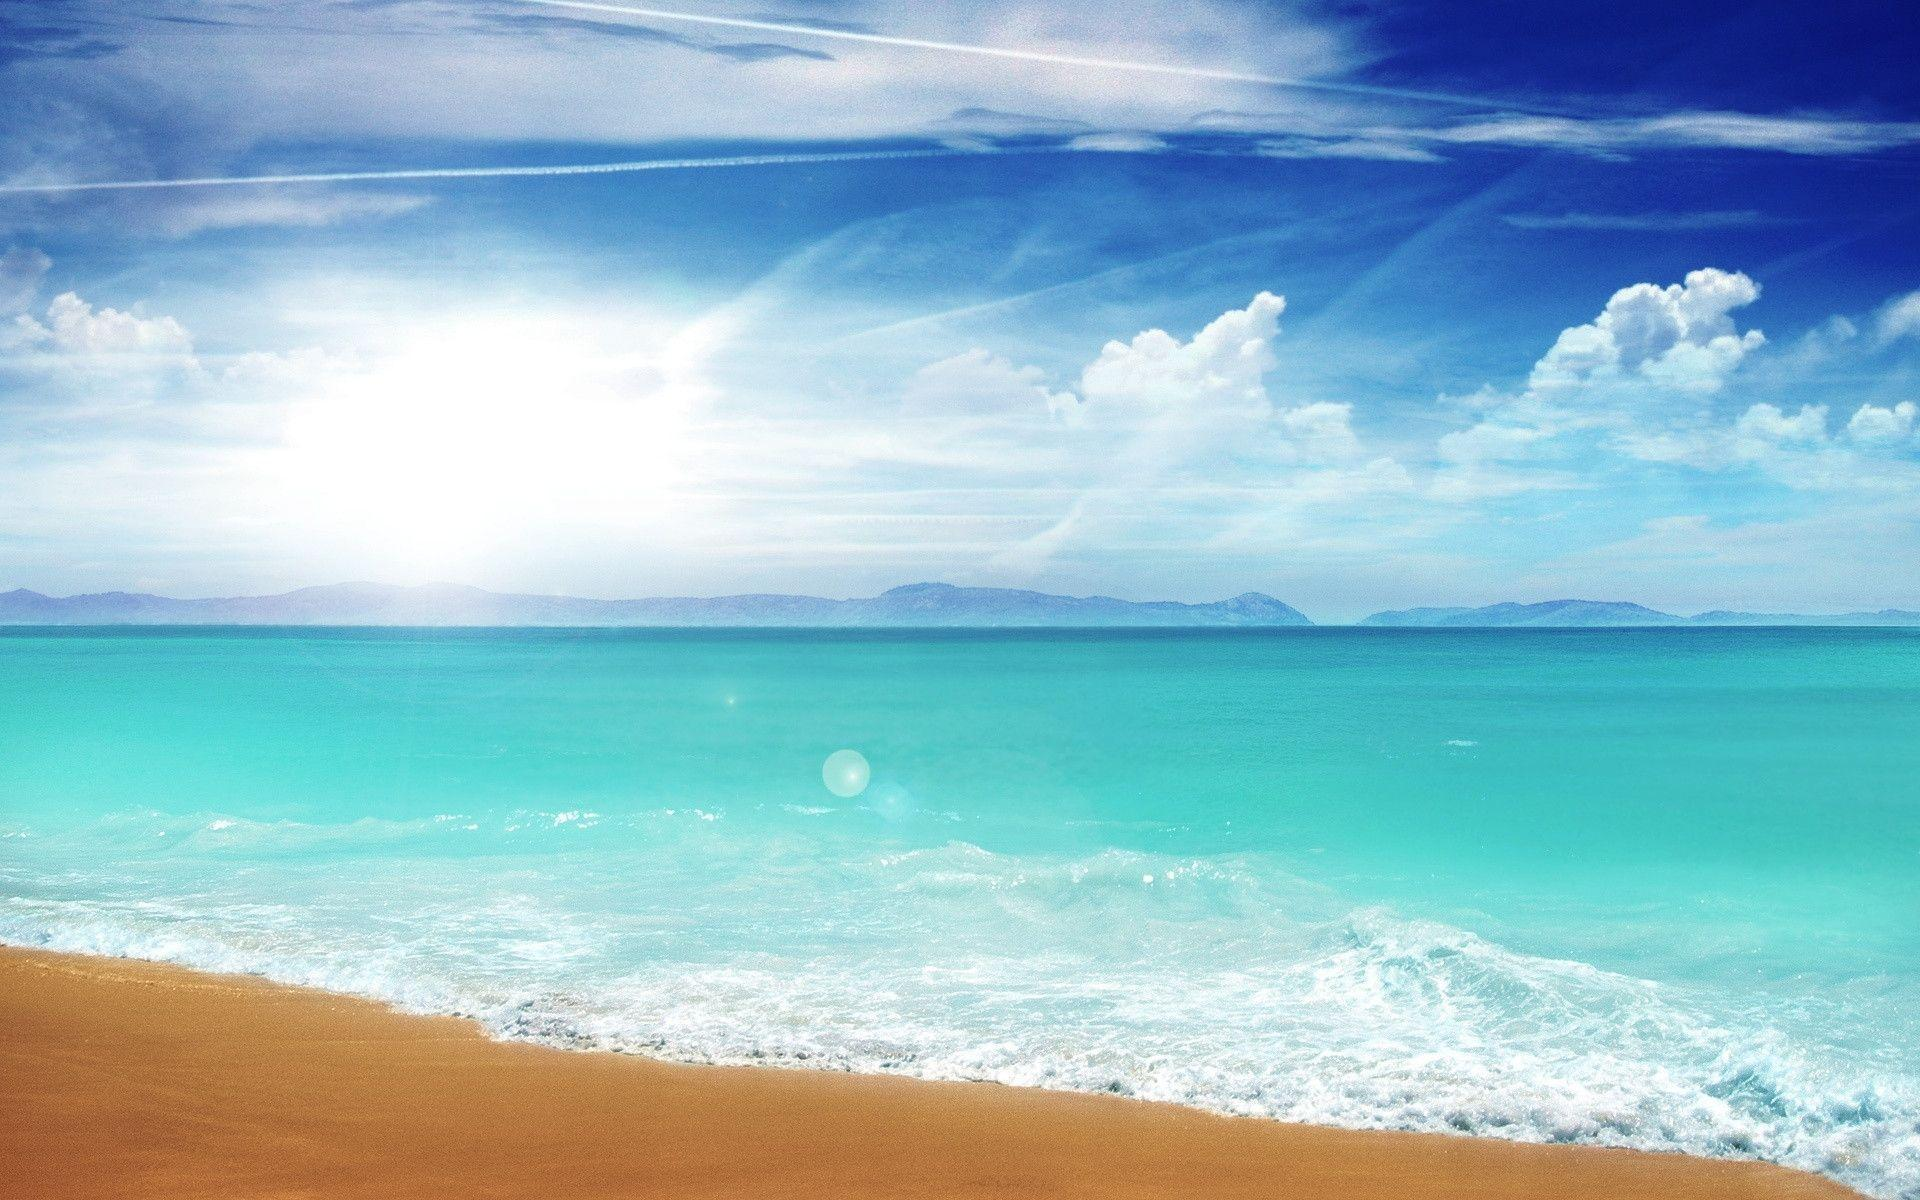 Beach Desktop Wallpaper Widescreen: Summer Beach Backgrounds